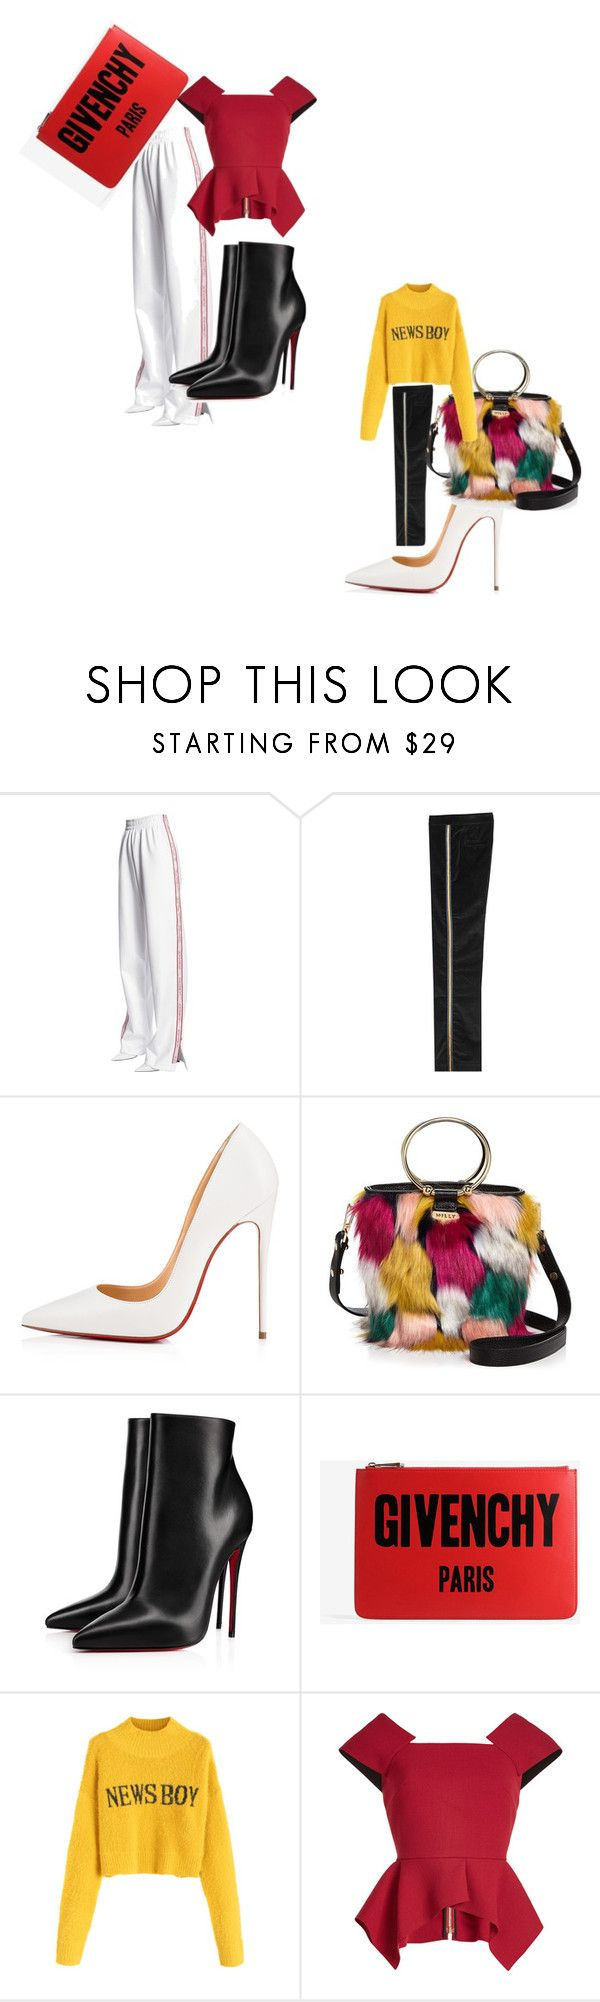 """""""casual affair"""" by designa-999 on Polyvore featuring Misbehave, The Seafarer, Christian Louboutin, Milly, Givenchy and Roland Mouret"""